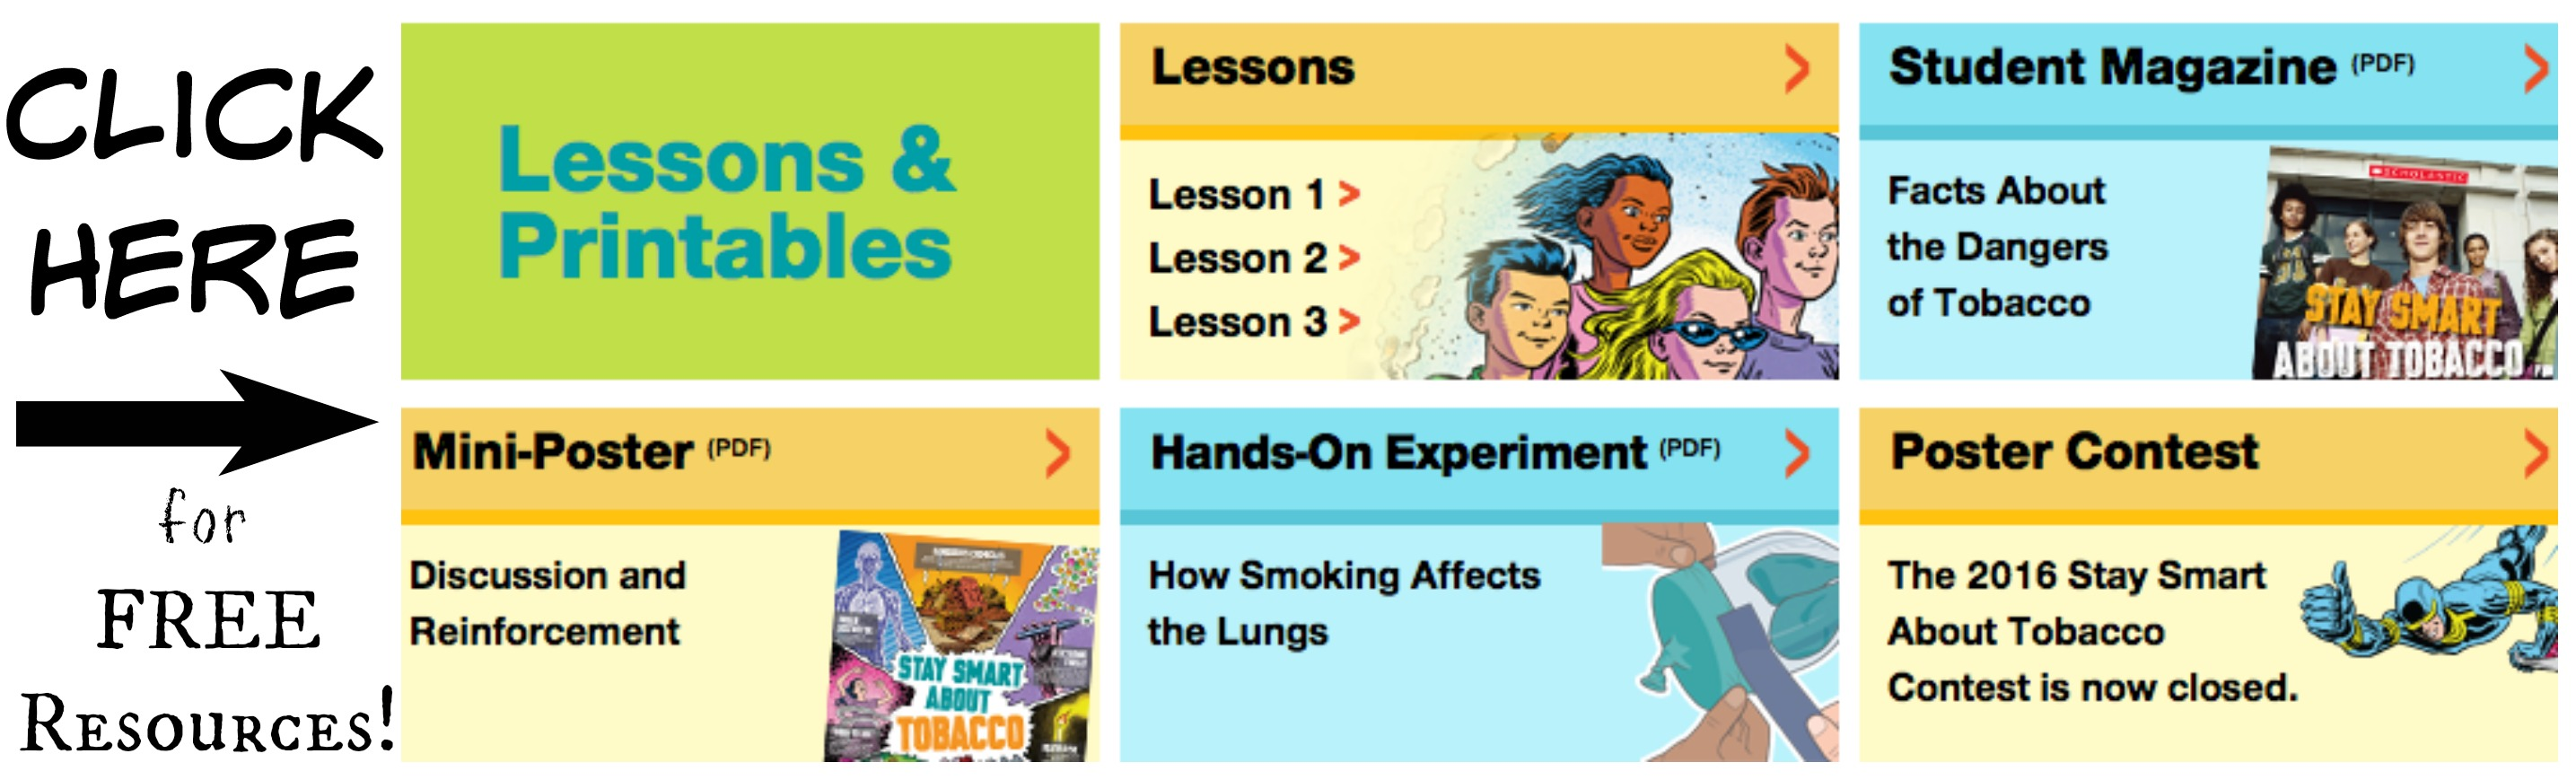 Lung Science Experiment And Tobacco Prevention Resources